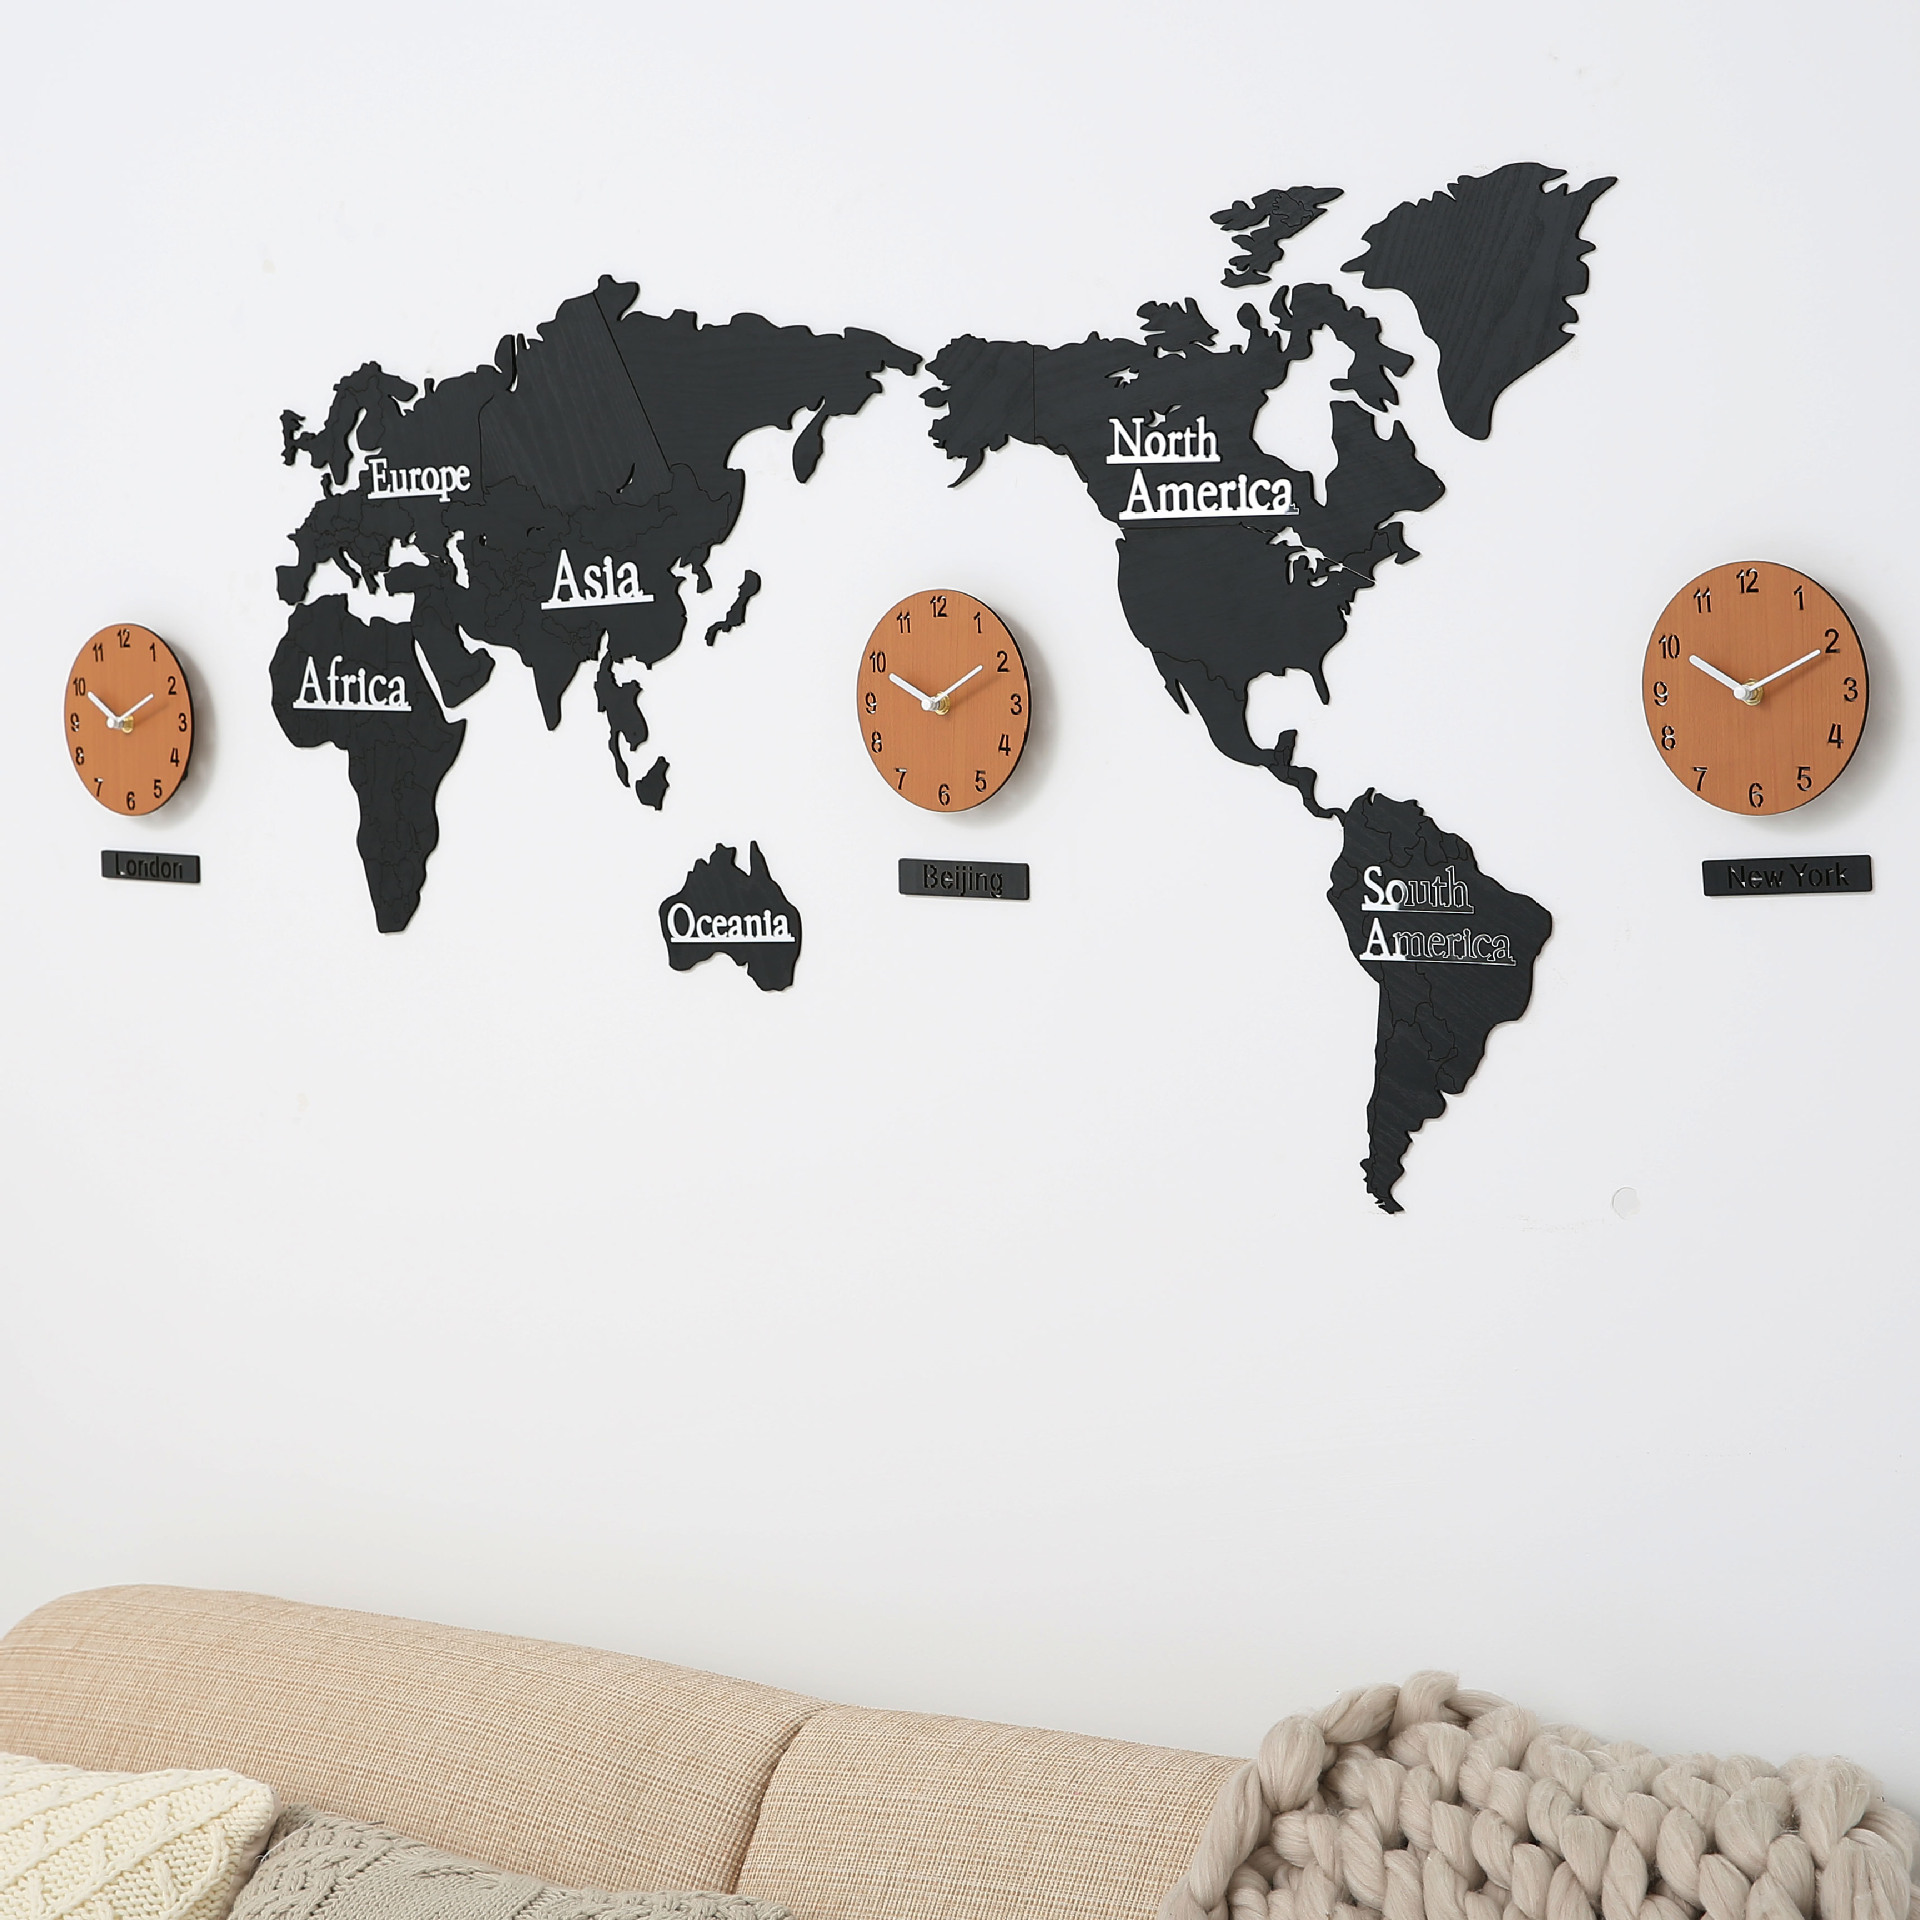 Diy 3d wooden mdf digital wall clock world map large wall clock wood diy 3d wooden mdf digital wall clock world map large cheap wall clock watch modern european gumiabroncs Image collections